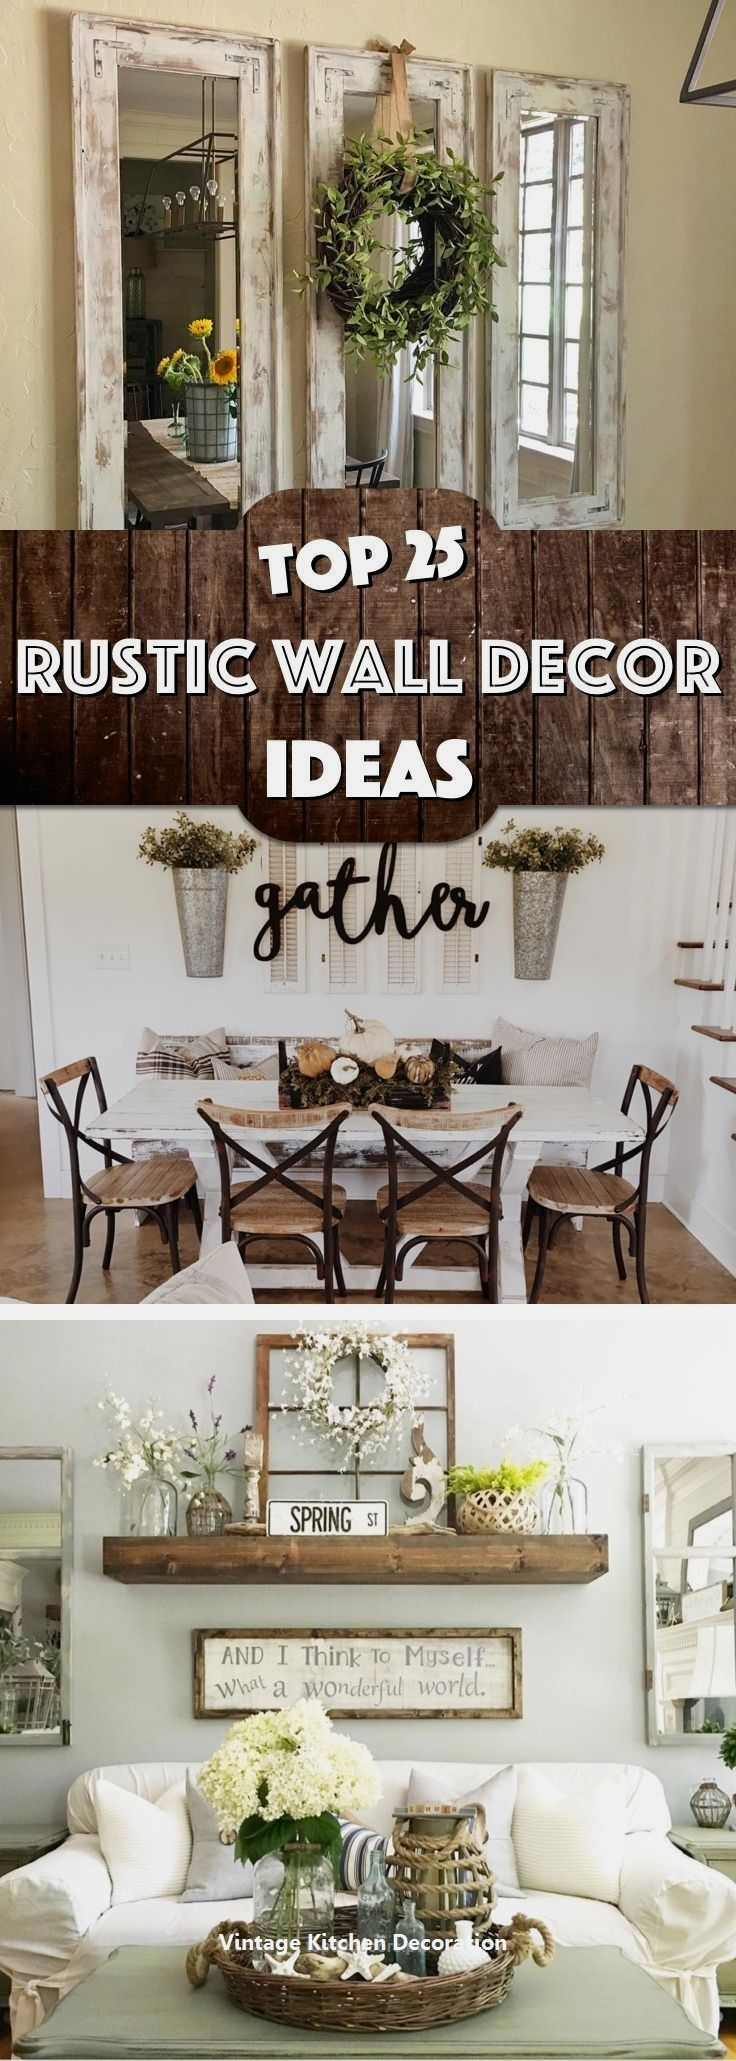 Pin By Christina Colon On Diy In 2021 Easy Home Decor Farm House Living Room Home Decor